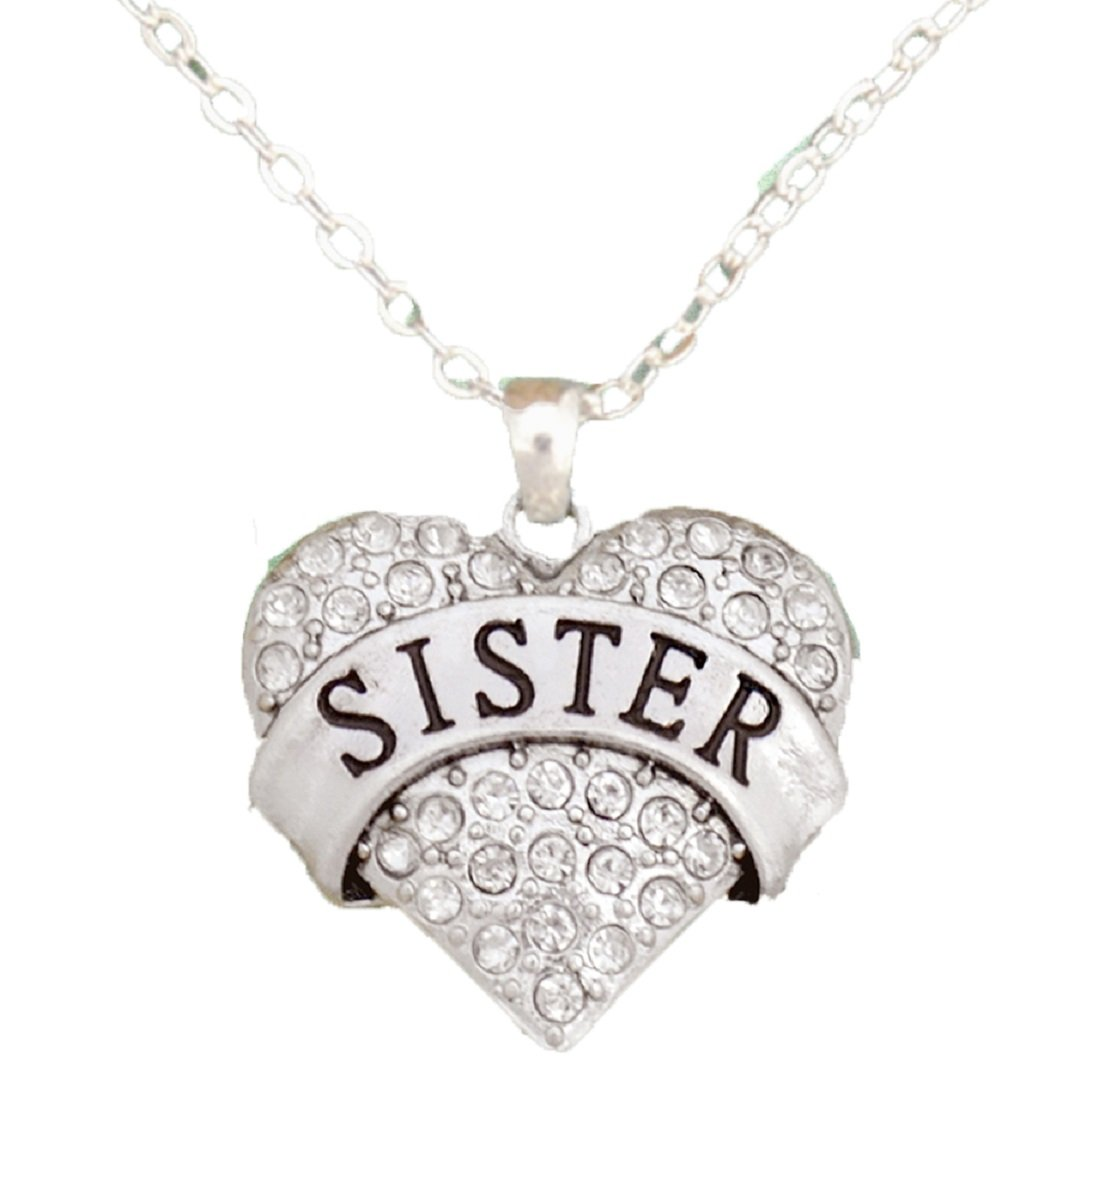 From the Heart ''Sister'' Clear Crystal Rhinestone Heart Necklace.Sister is Engraved in the Center-Crystal Rhinestones Sparkling!!- Heart Charm hangs on an 18 inch silver plated Chain & is Gift Boxed.Perfect Gift for your Sister! Wonderful Birthday,Easter,V